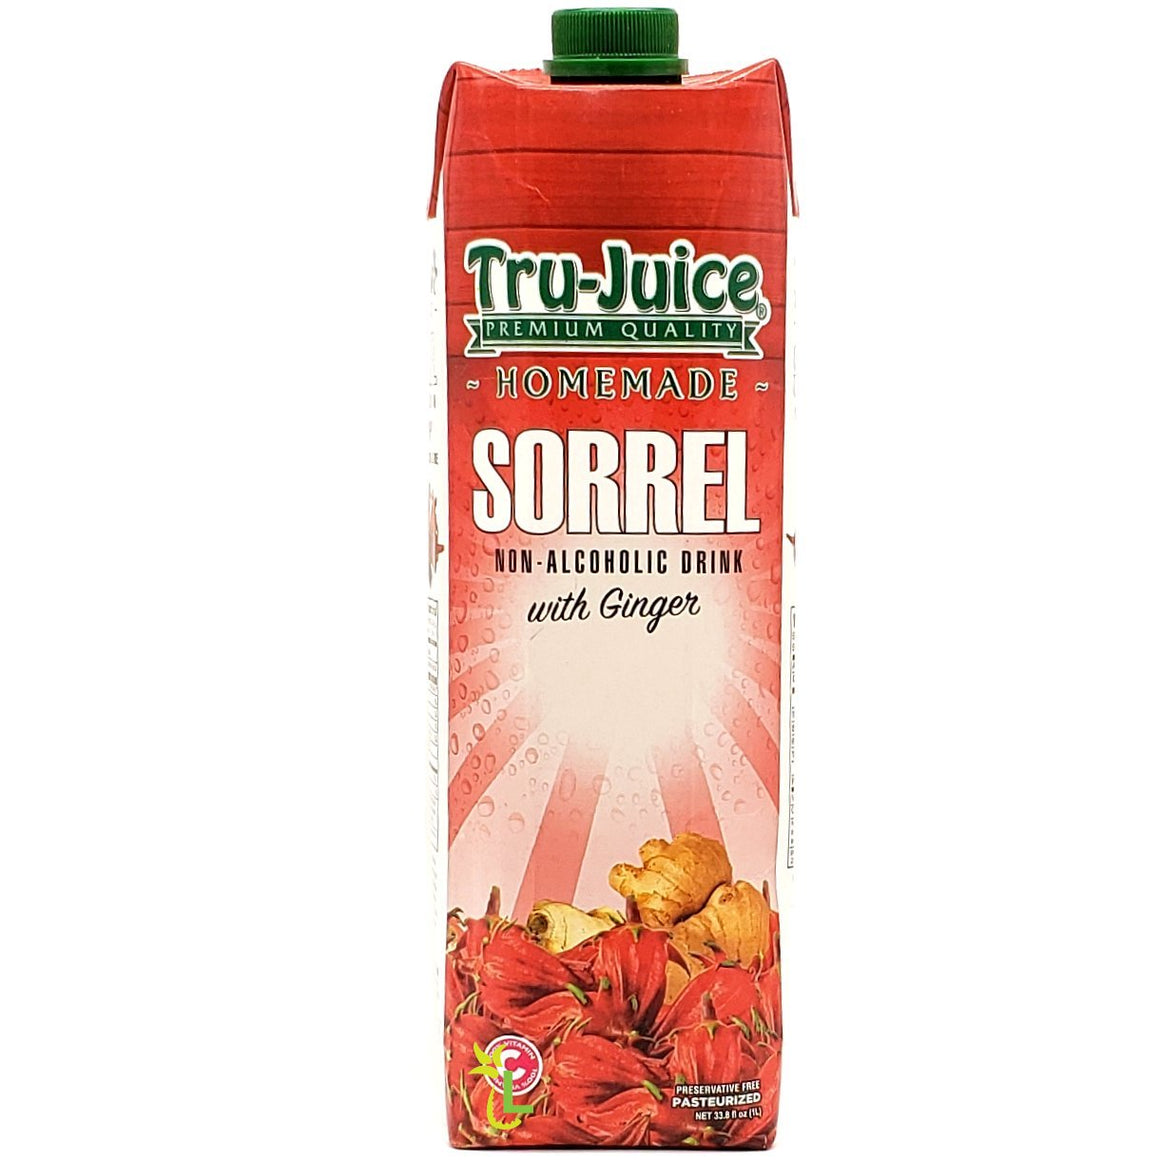 TRU-JUICE SORREL WITH GINGER 1 Litre - Premier Cru Retail Stores